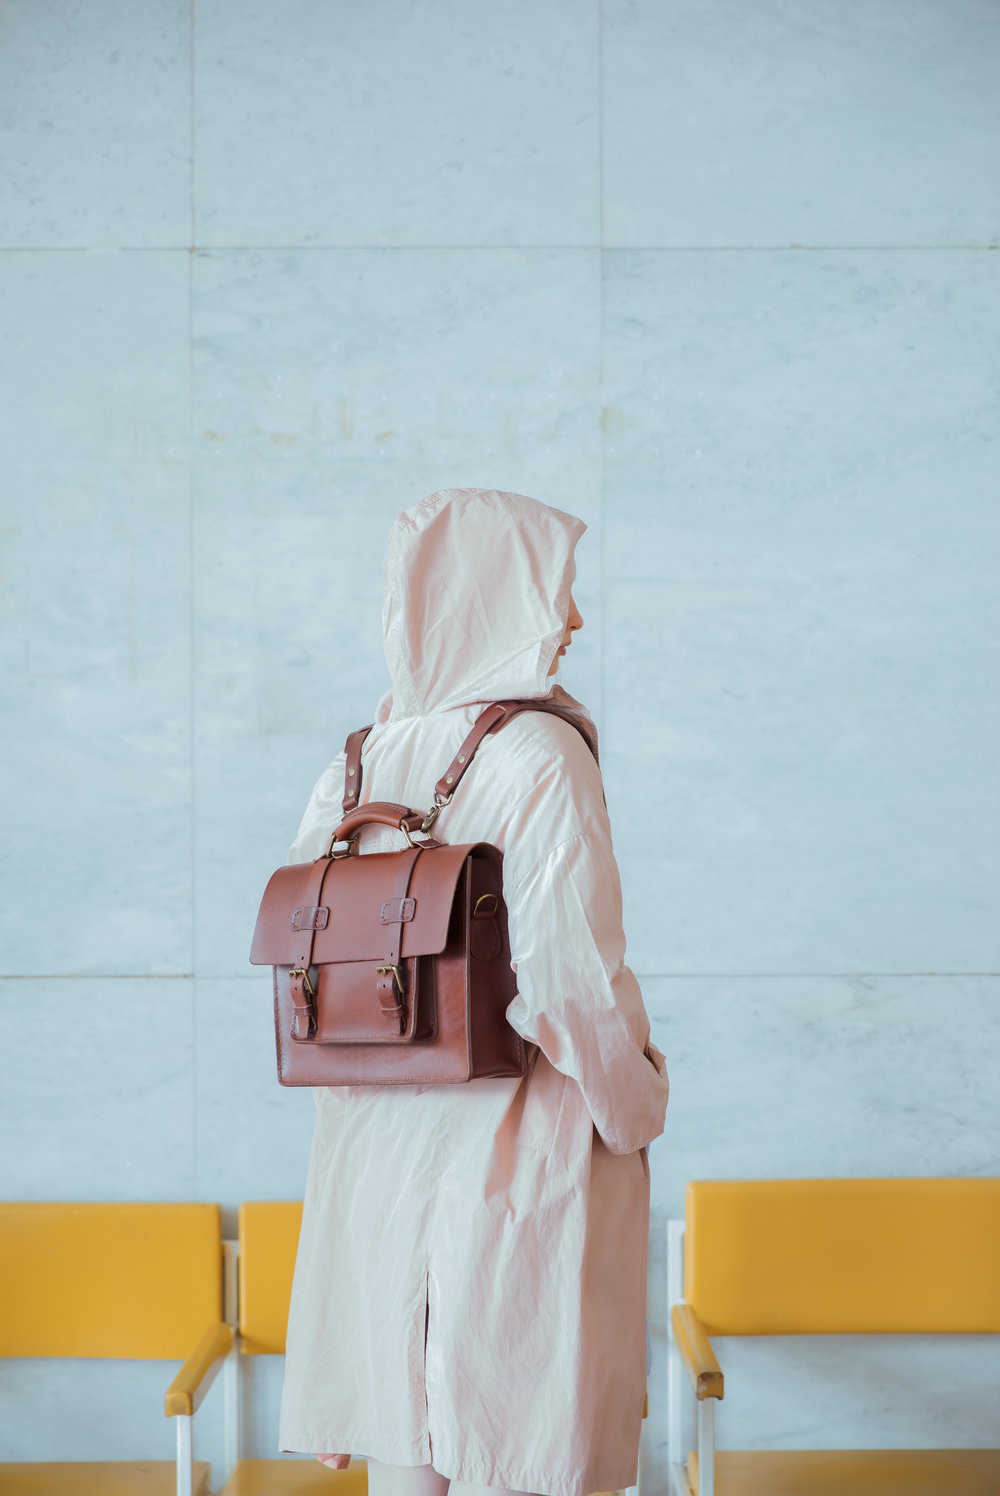 Model wearing saddle stitched luxury satchel with backpack straps